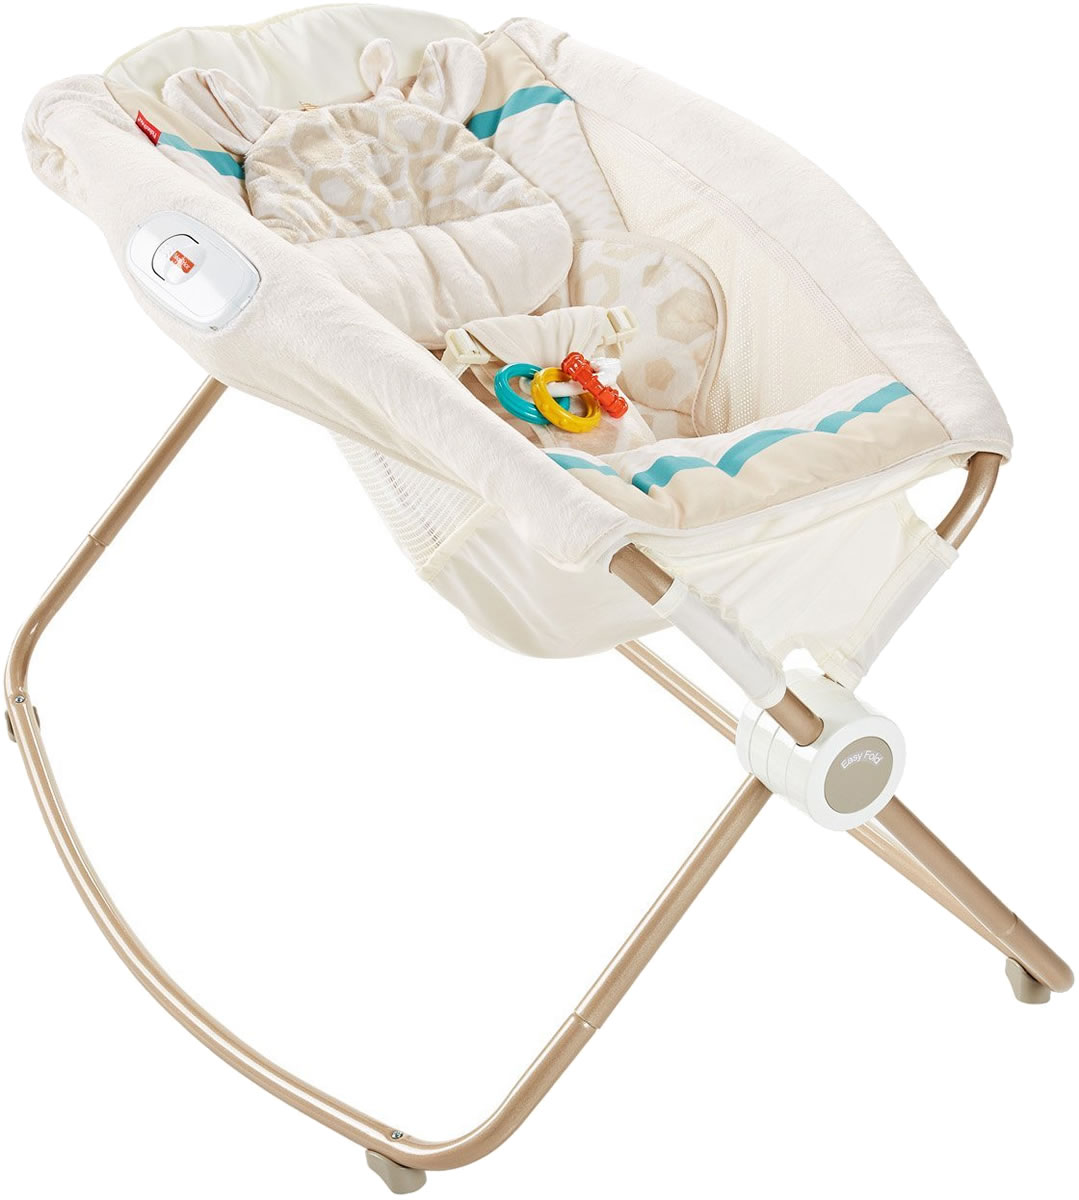 sleeper top safety best baby moonlight choose reviews how and ingenuity play rocker lamb lullaby with rocking to the rock